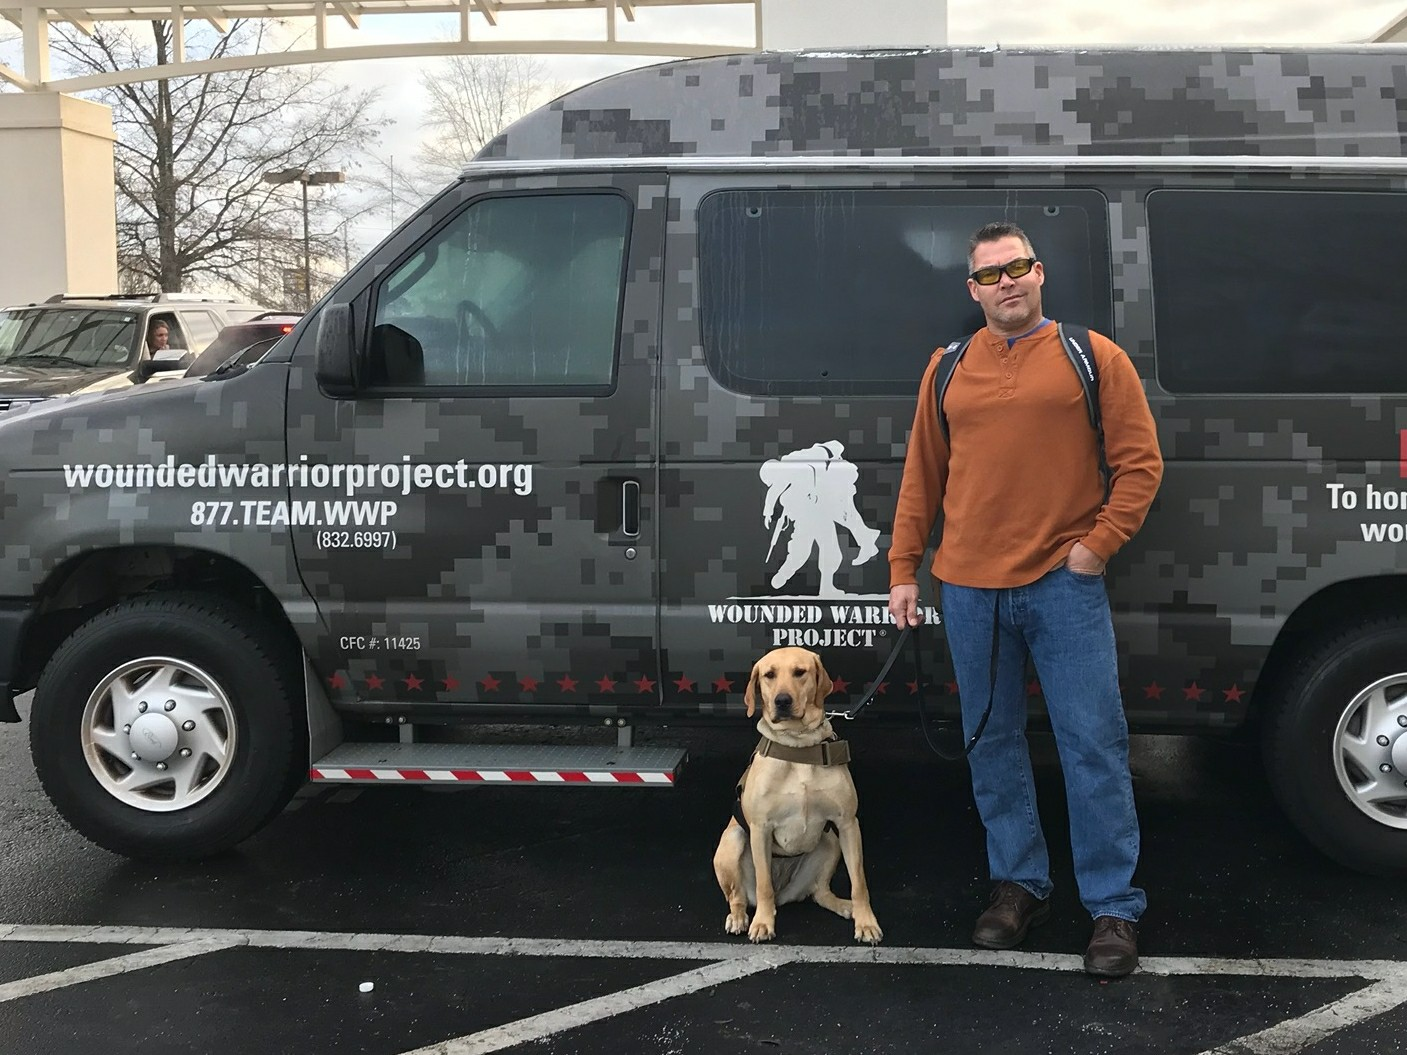 Rob and Liberty have been on some amazing adventures including this WWP, retreat. They initially told him that Liberty would need to stay home, then they met Liberty and realized she was properly trained. She is now welcome at any Wounded Warrior Project function.